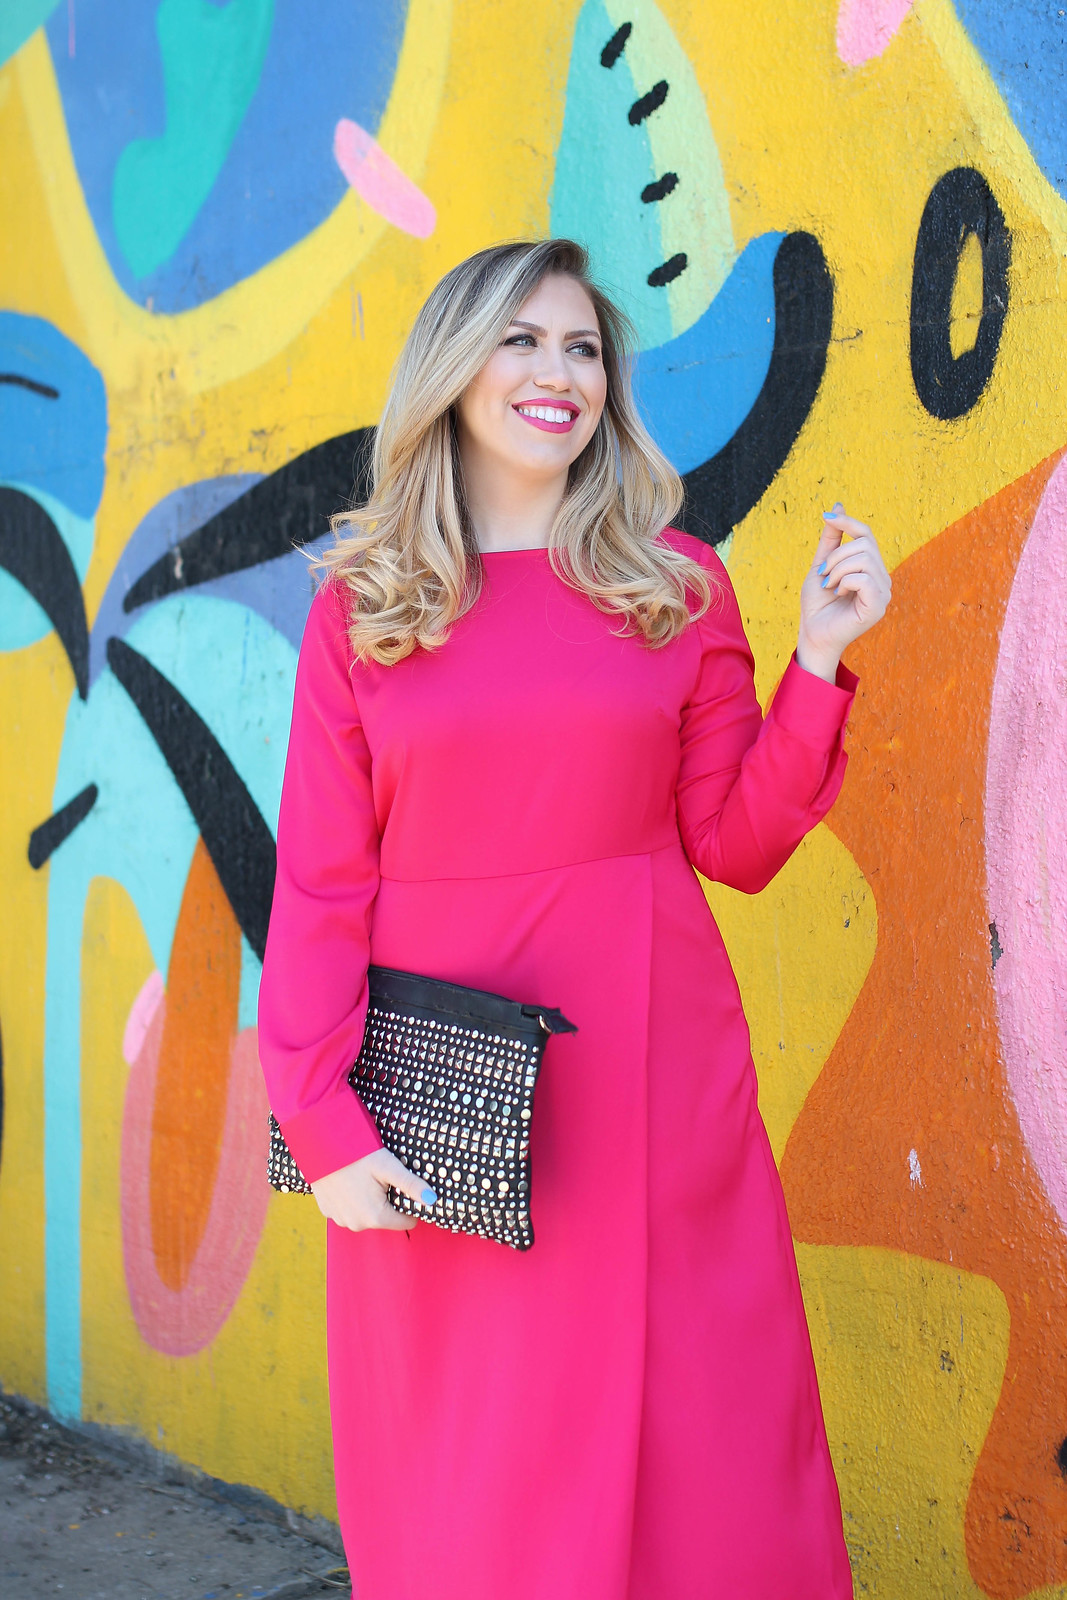 Hot Pink Satin Midi Dress Studded Clutch Hot Pink Lipstick Spring Outfit Living After Midnite Jackie Giardina Style Fashion Blogger